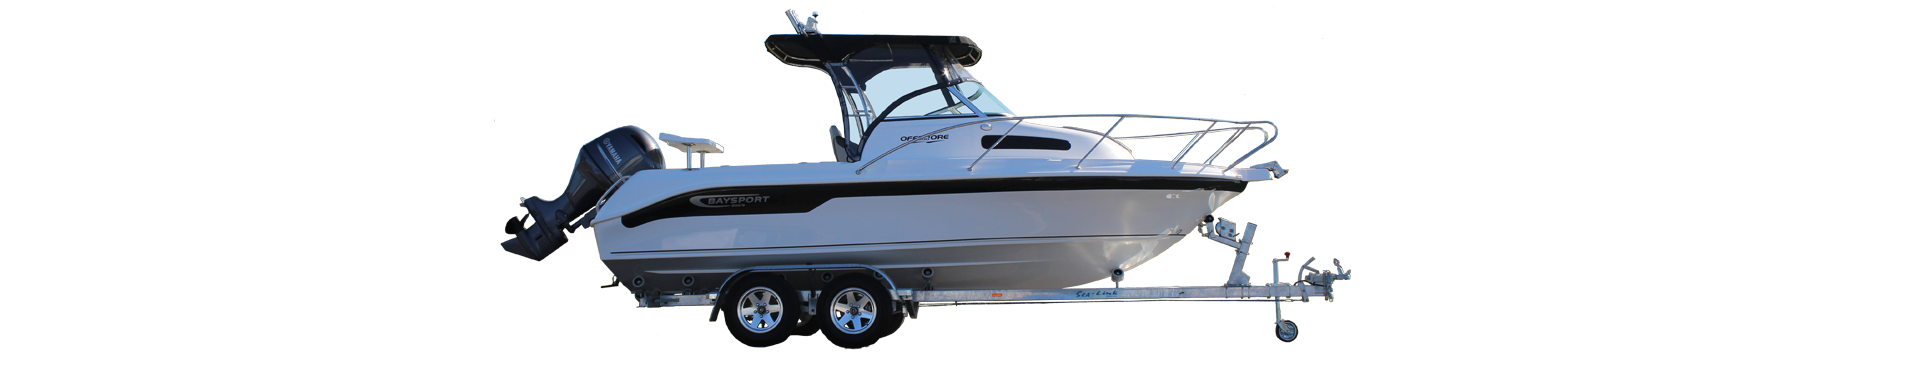 Baysport Boats 600 Offshore